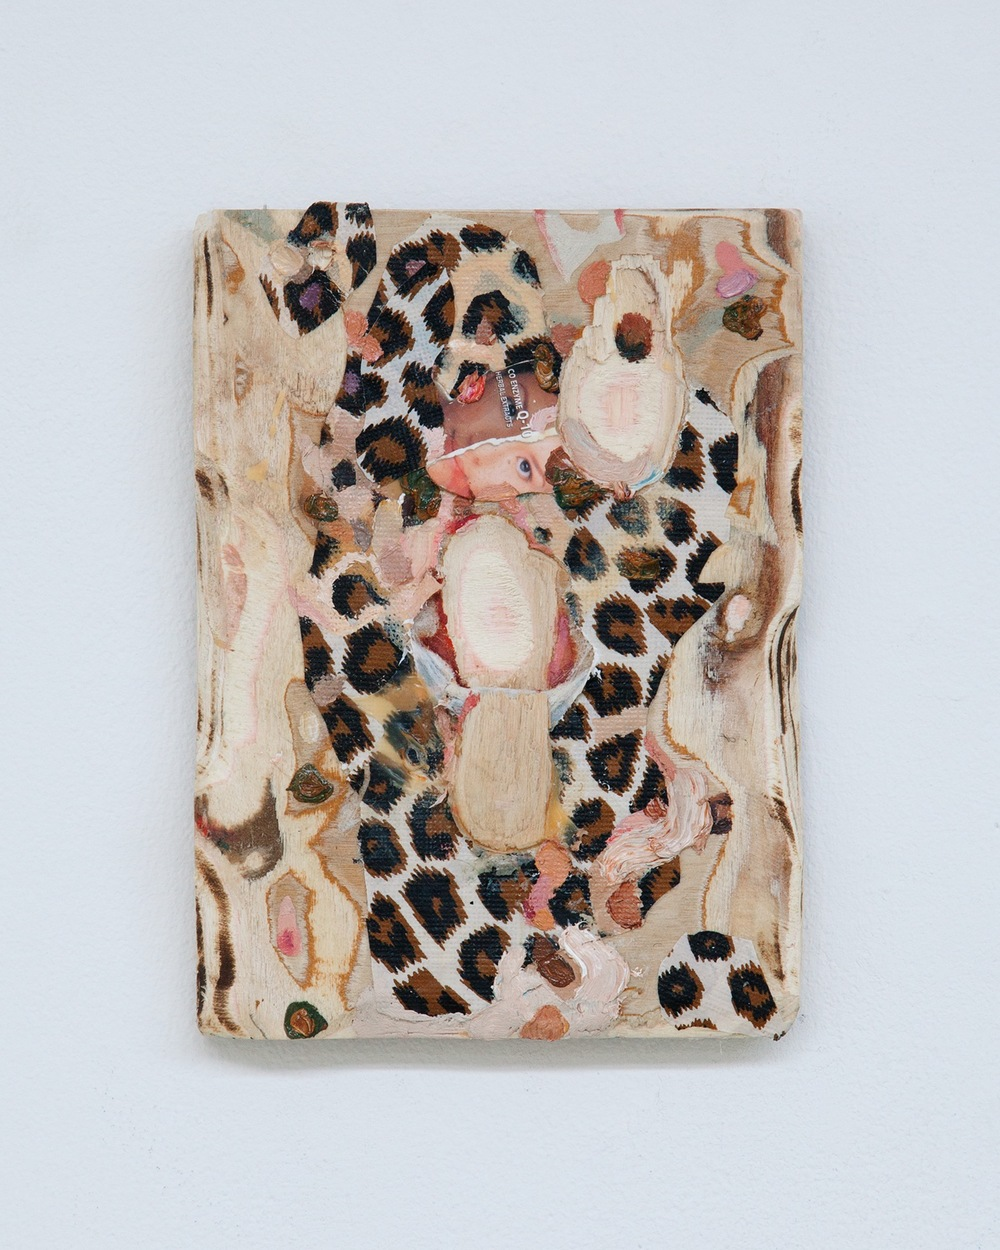 Piebald , 2015, oil, plastic, and skin whitening soap box on carved wood, 7 x 5 inches